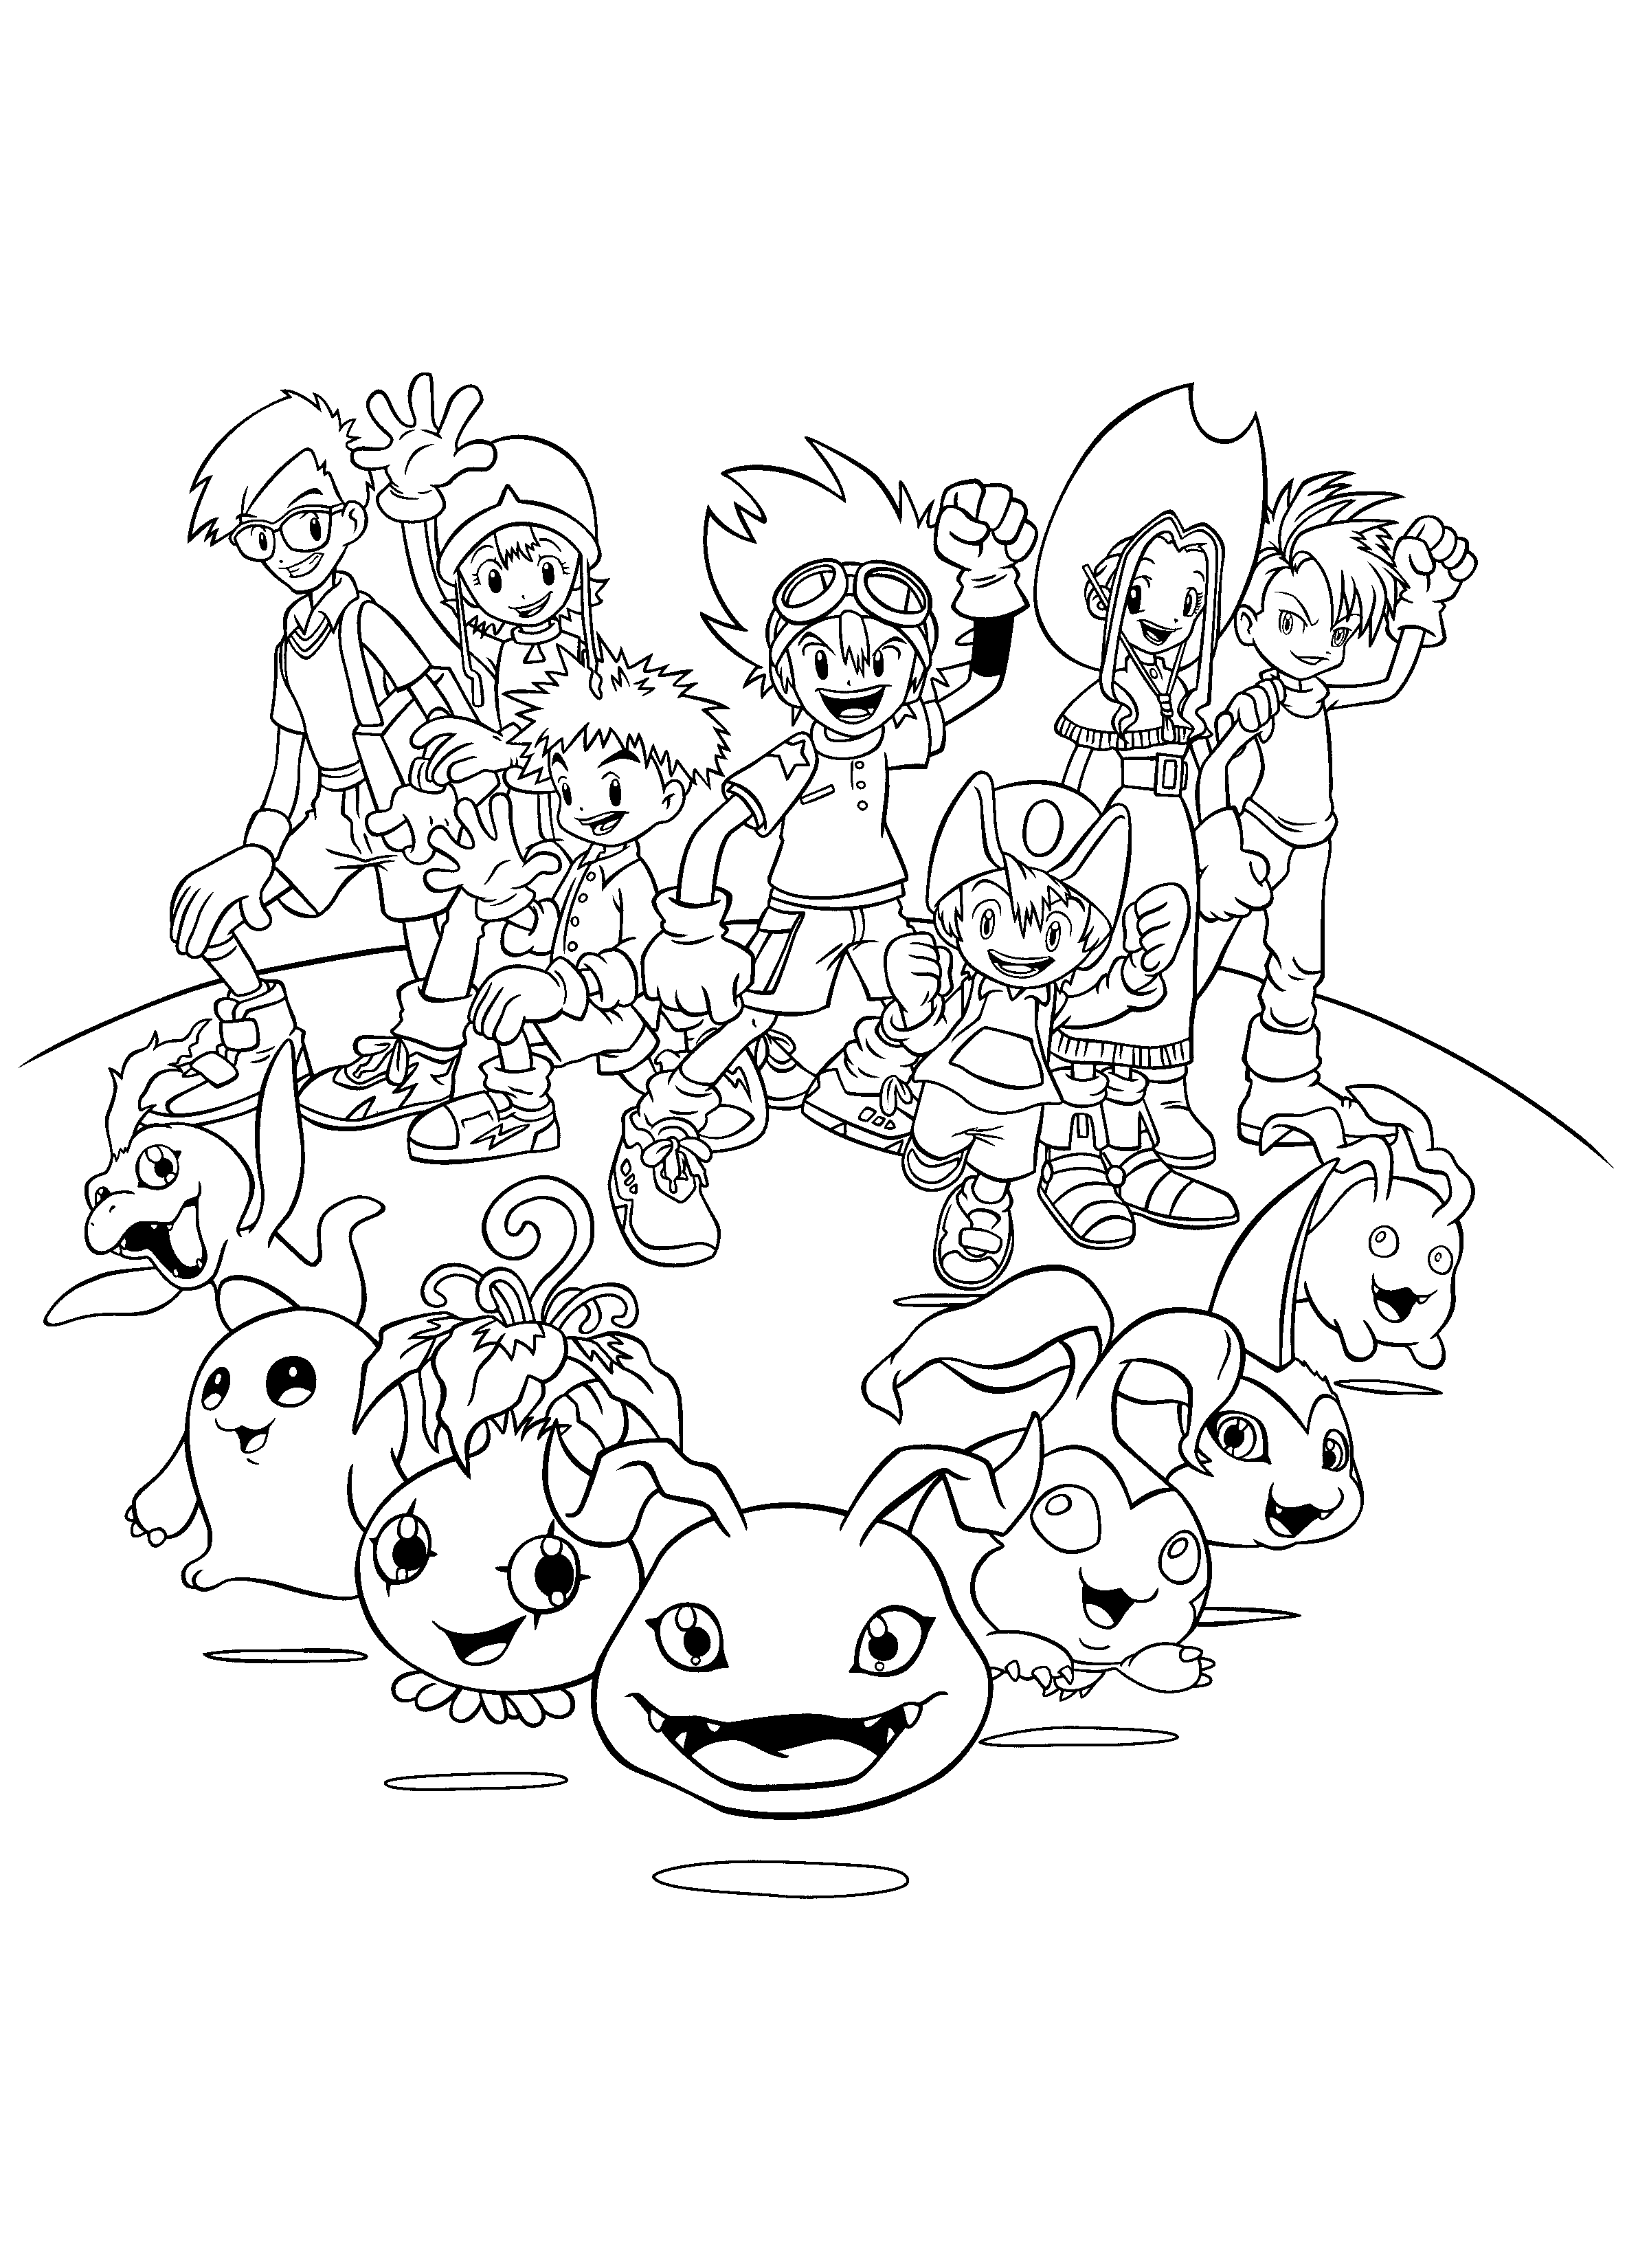 Coloring Page Digimon Coloring Pages 202 Digimon Free